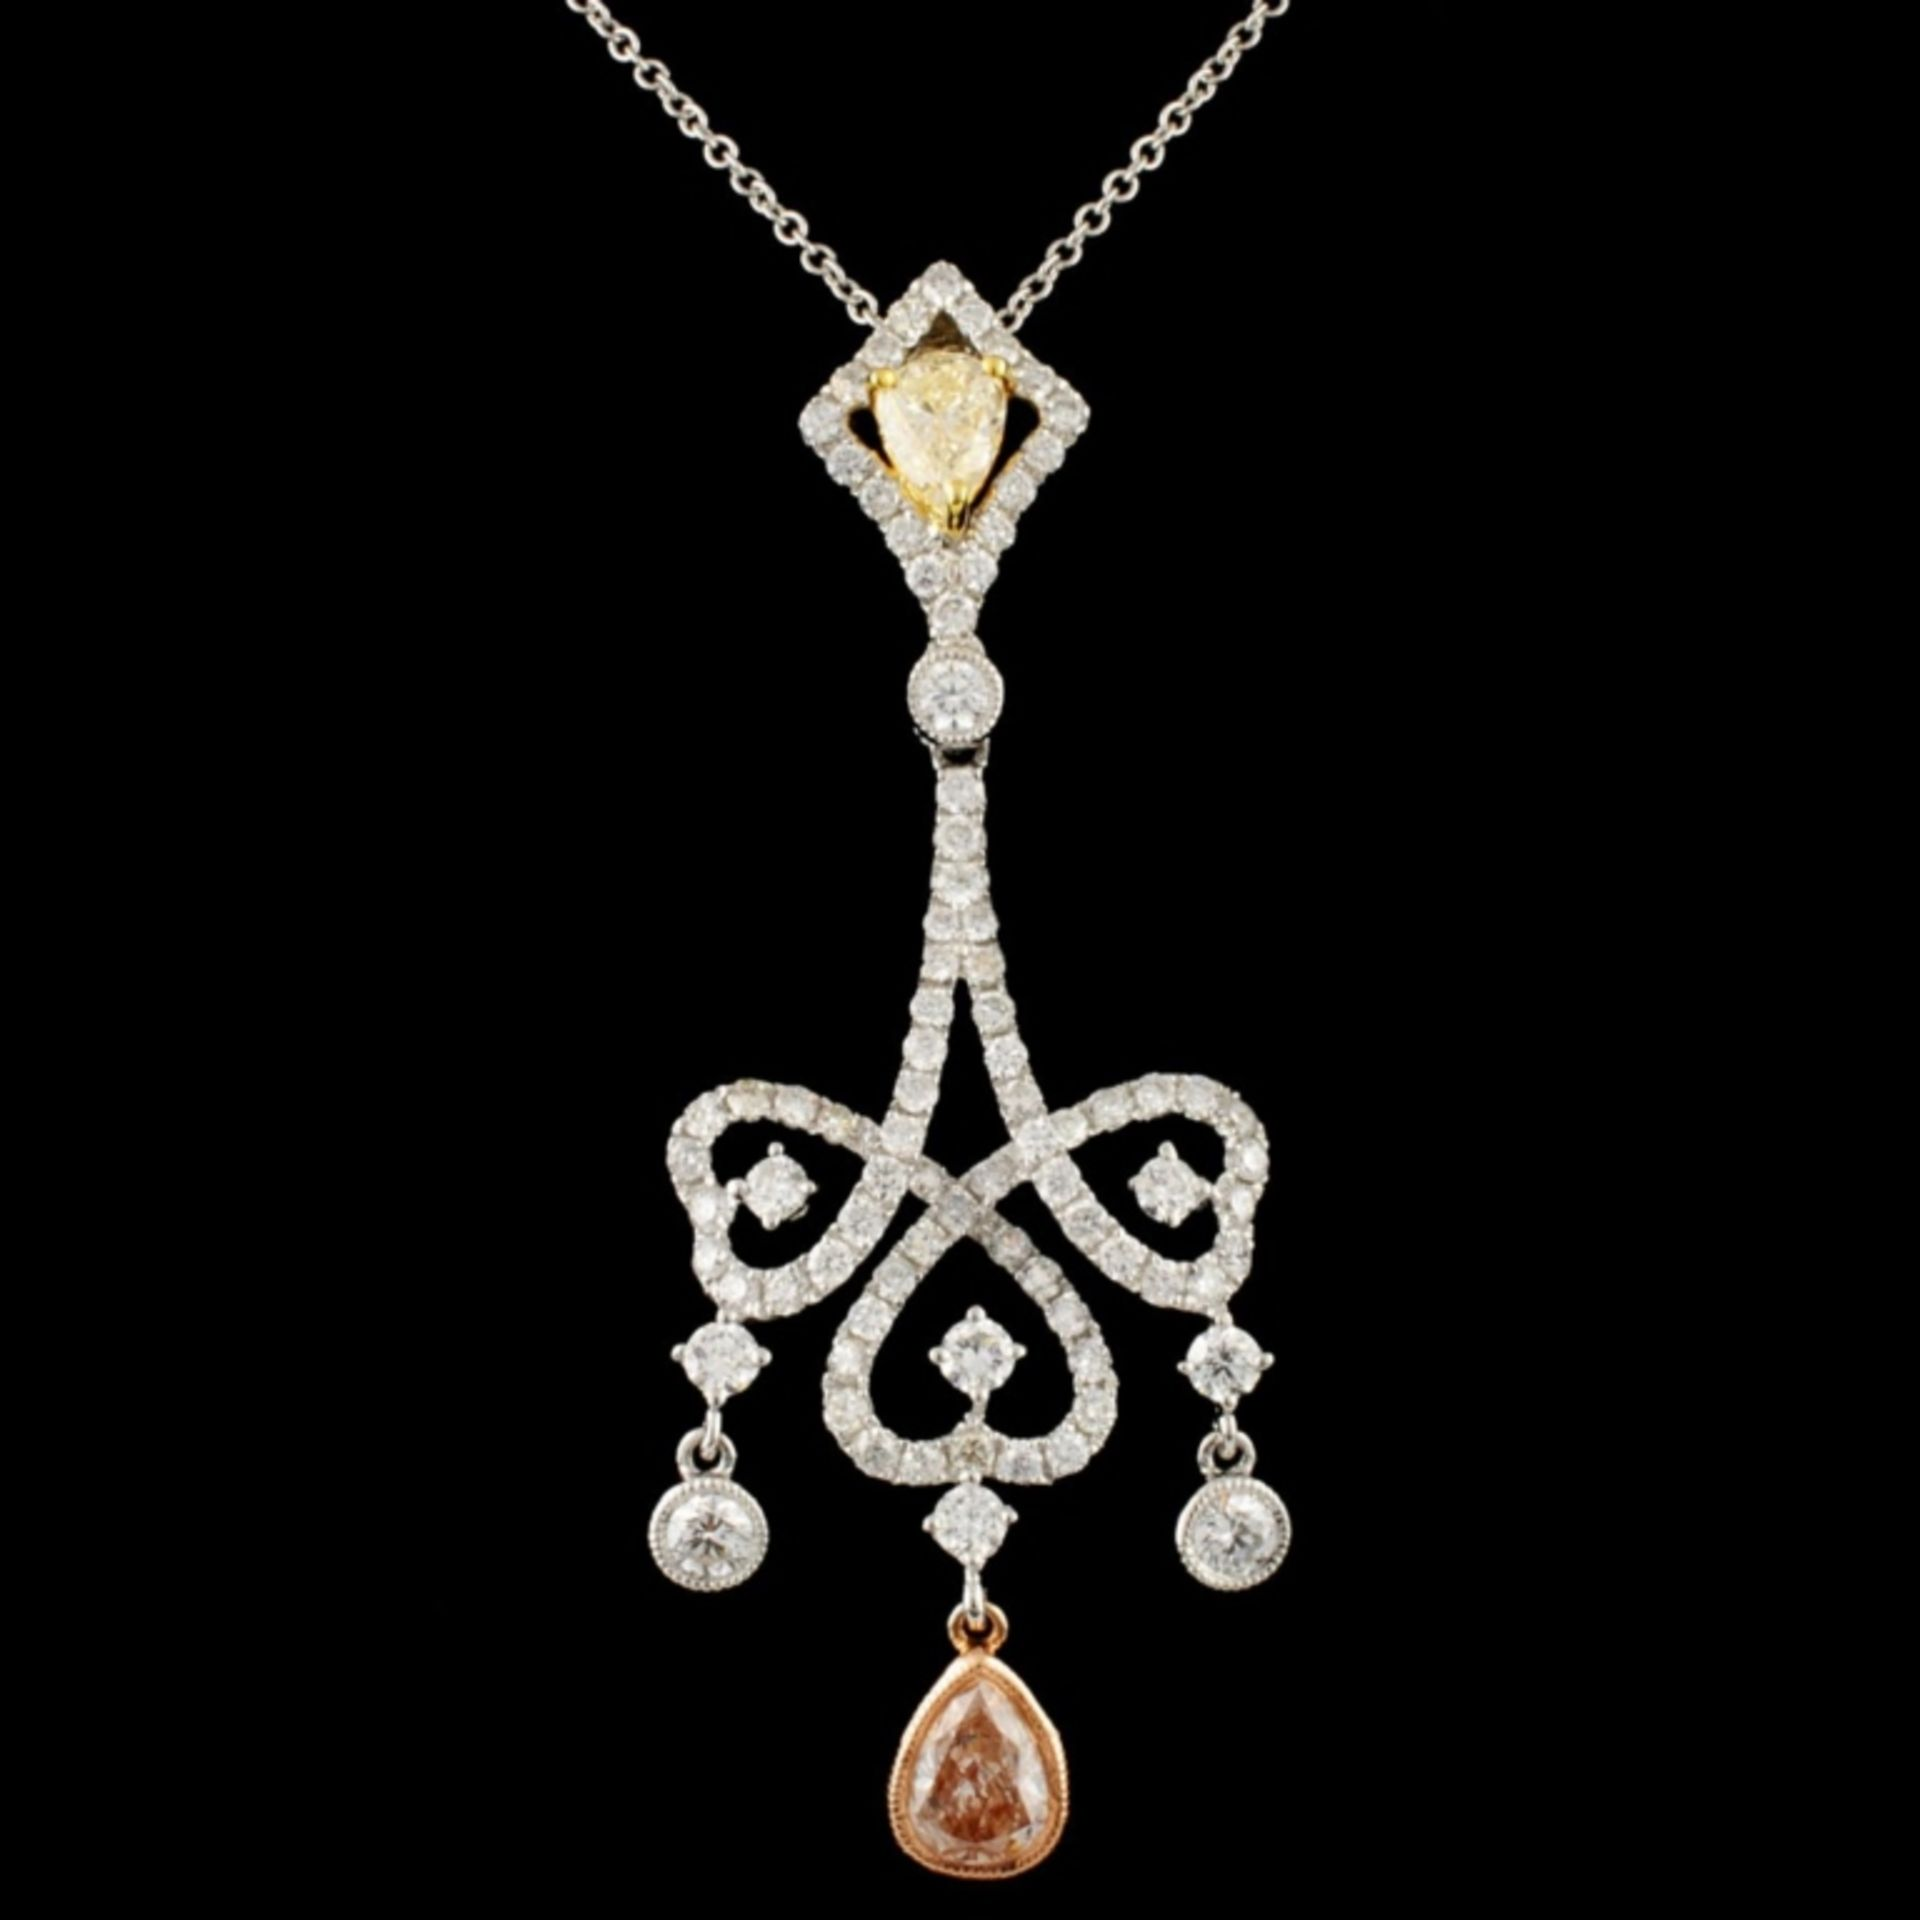 18K Gold 2.18ctw Fancy Diamond Pendant